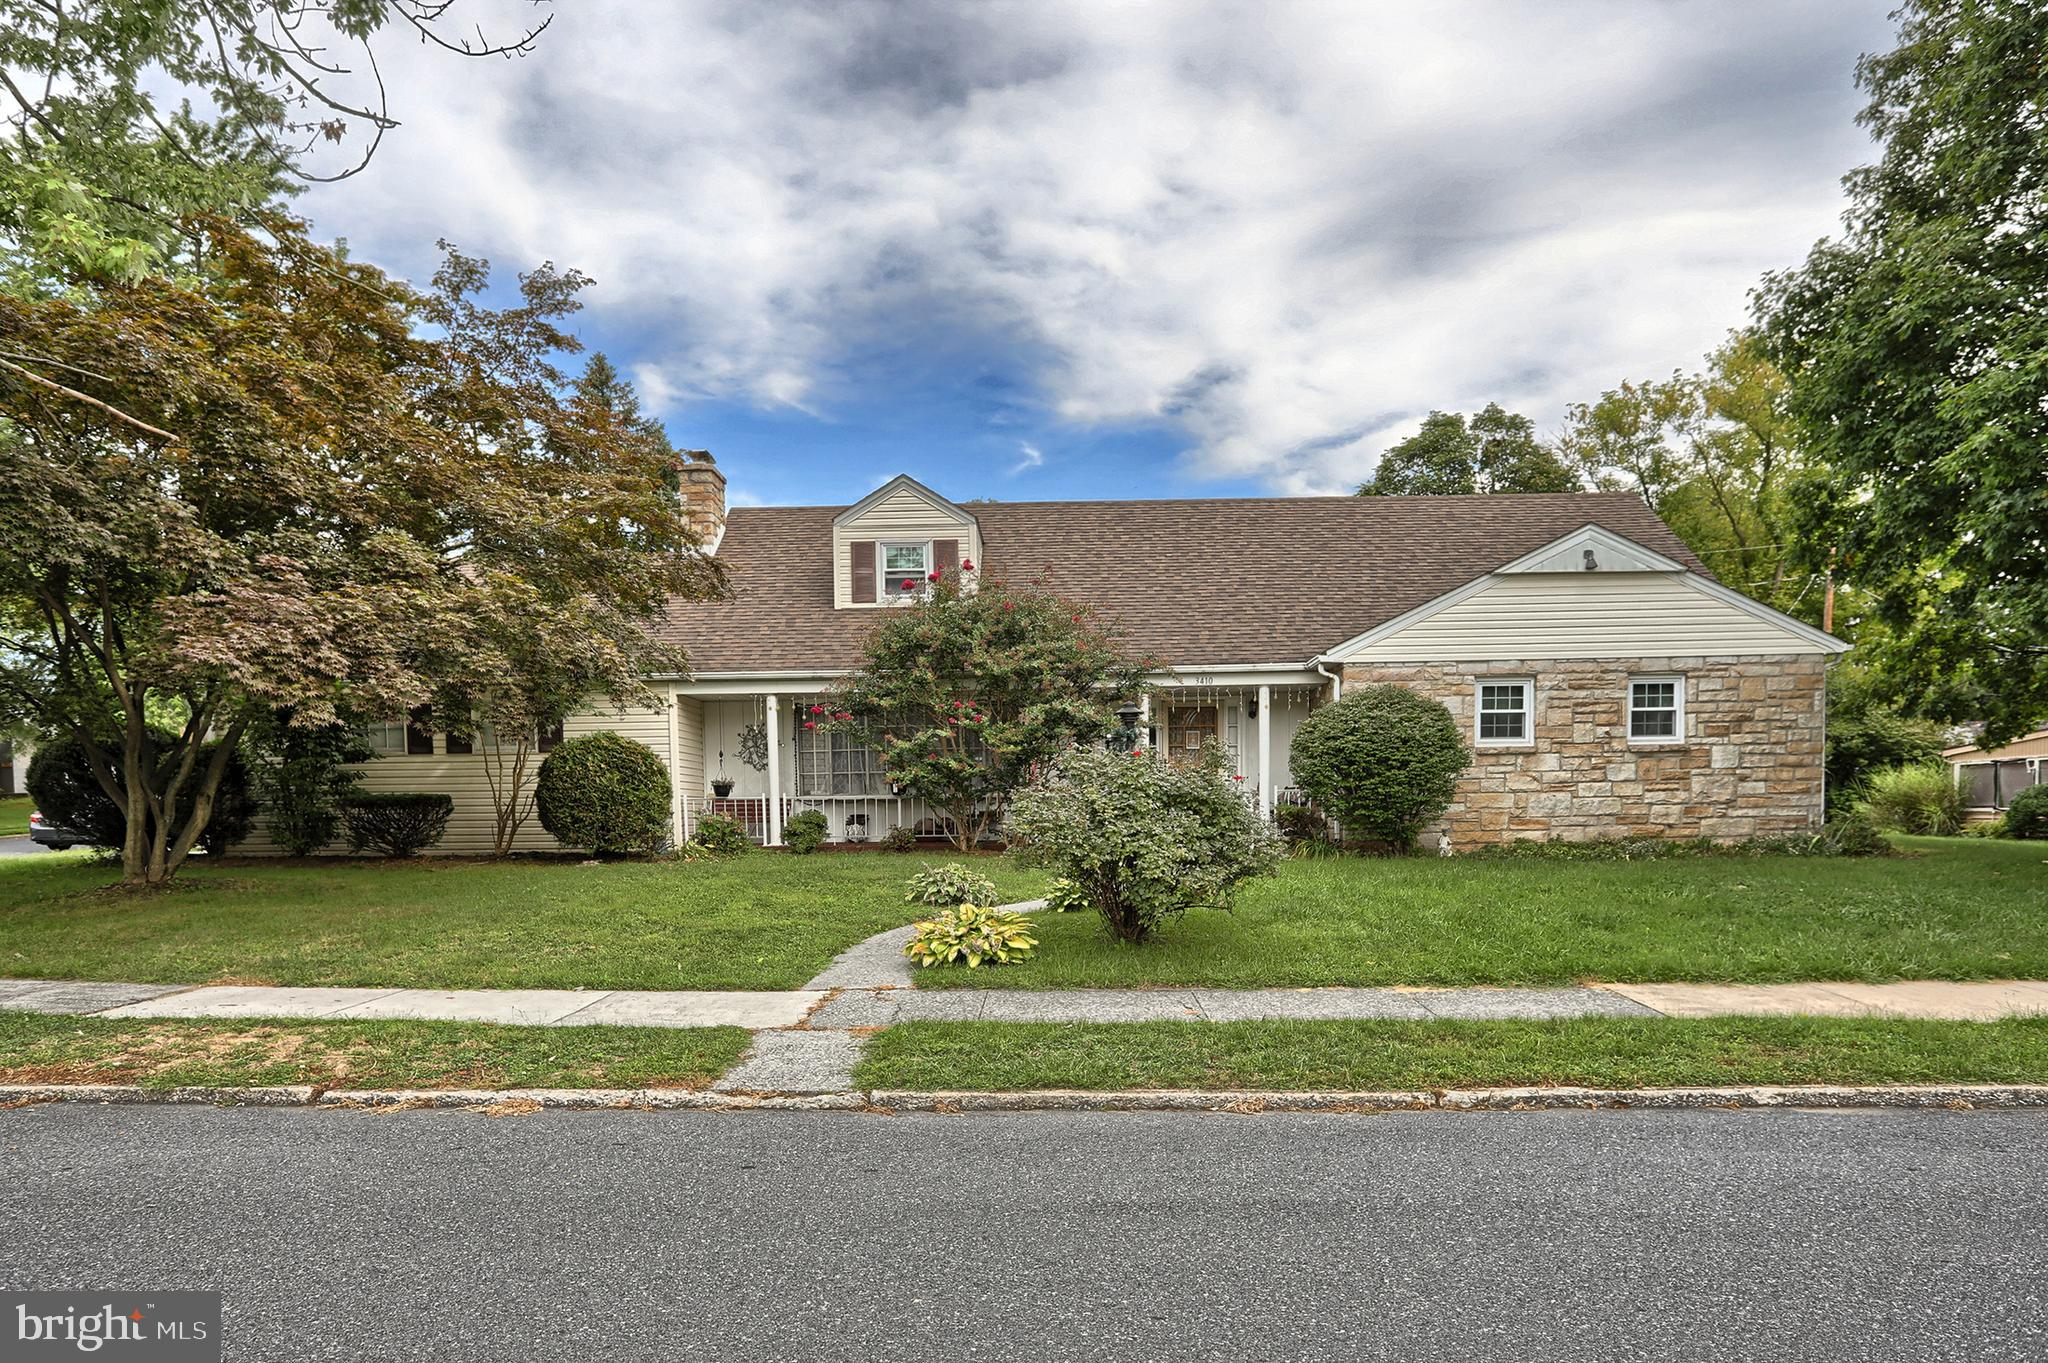 3410 CANBY STREET, HARRISBURG, PA 17109